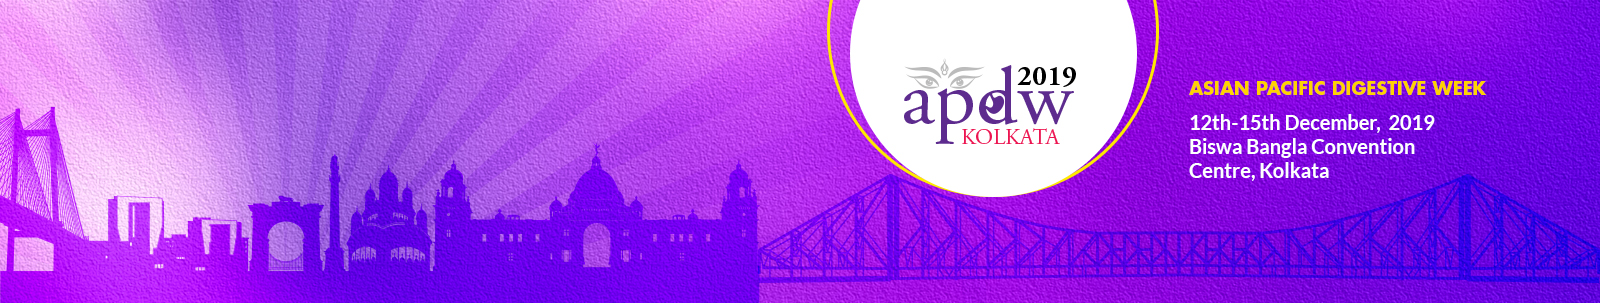 the Asian Pacific Digestive Week (APDW2019) to be held at Kolkata,